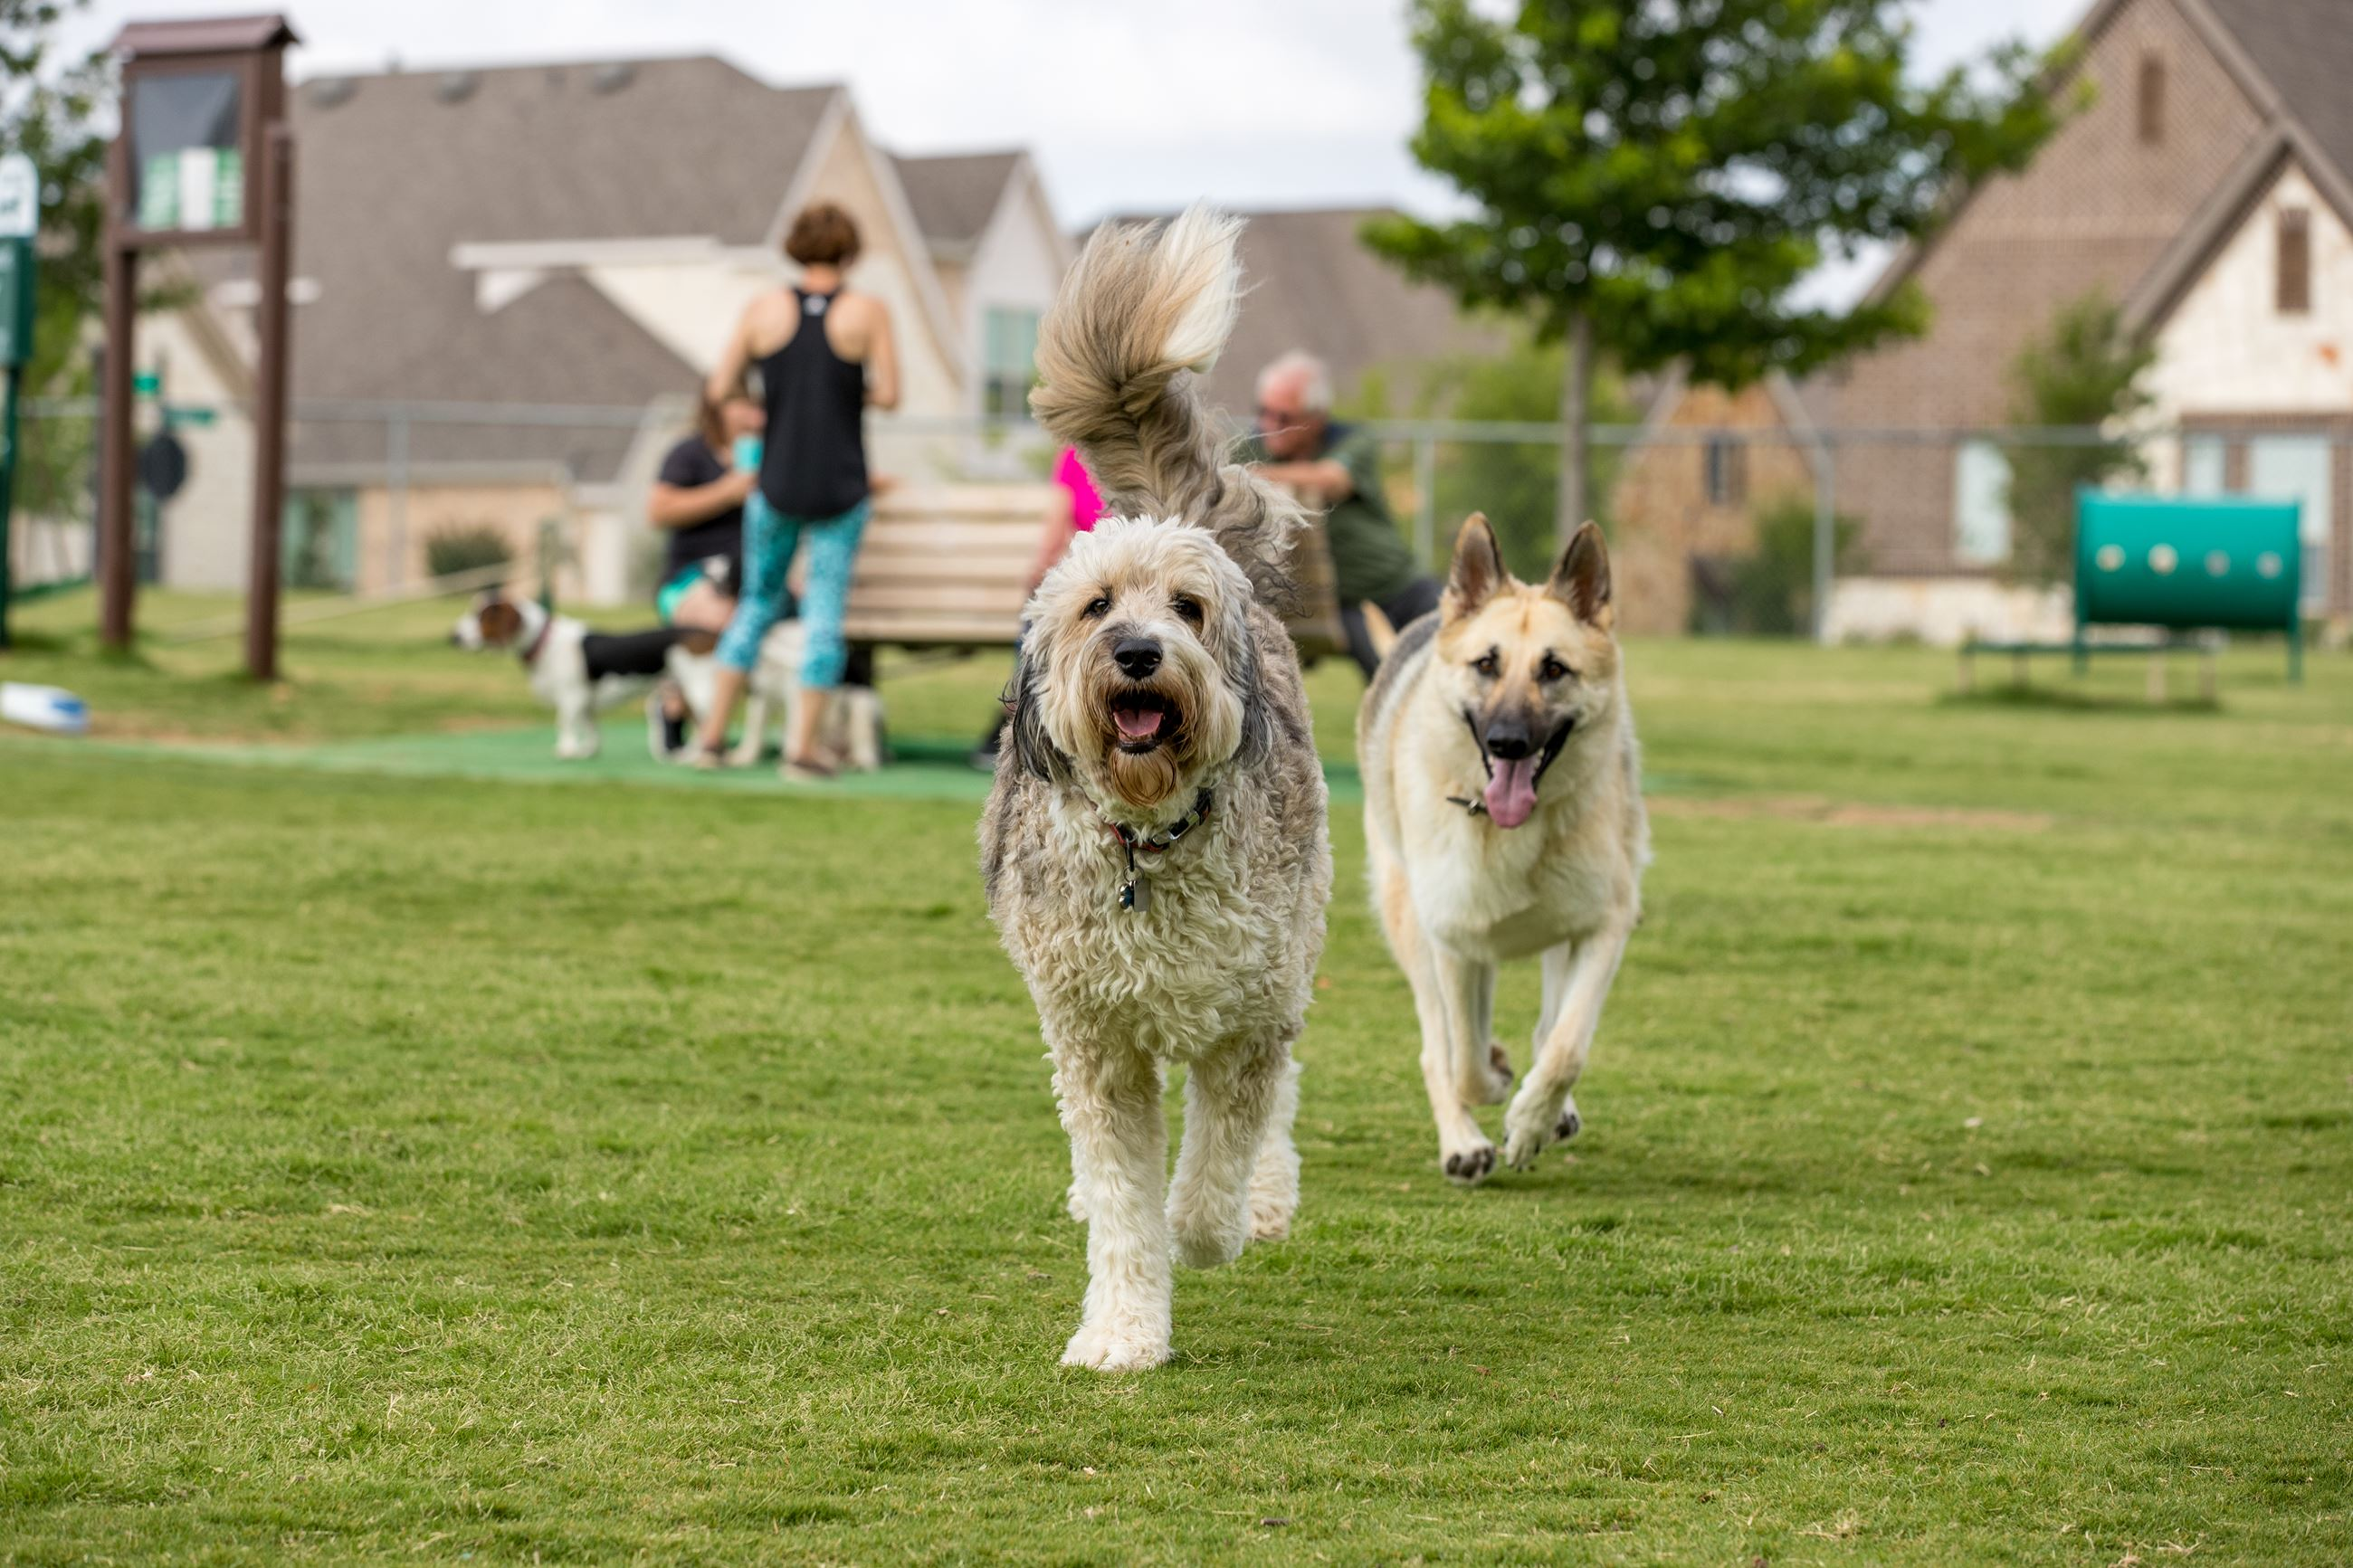 Trophy Club's 12th annual Pet Fest brings pets and pet owners together for a community pet fair celebrating man's best friend.  READ MORE